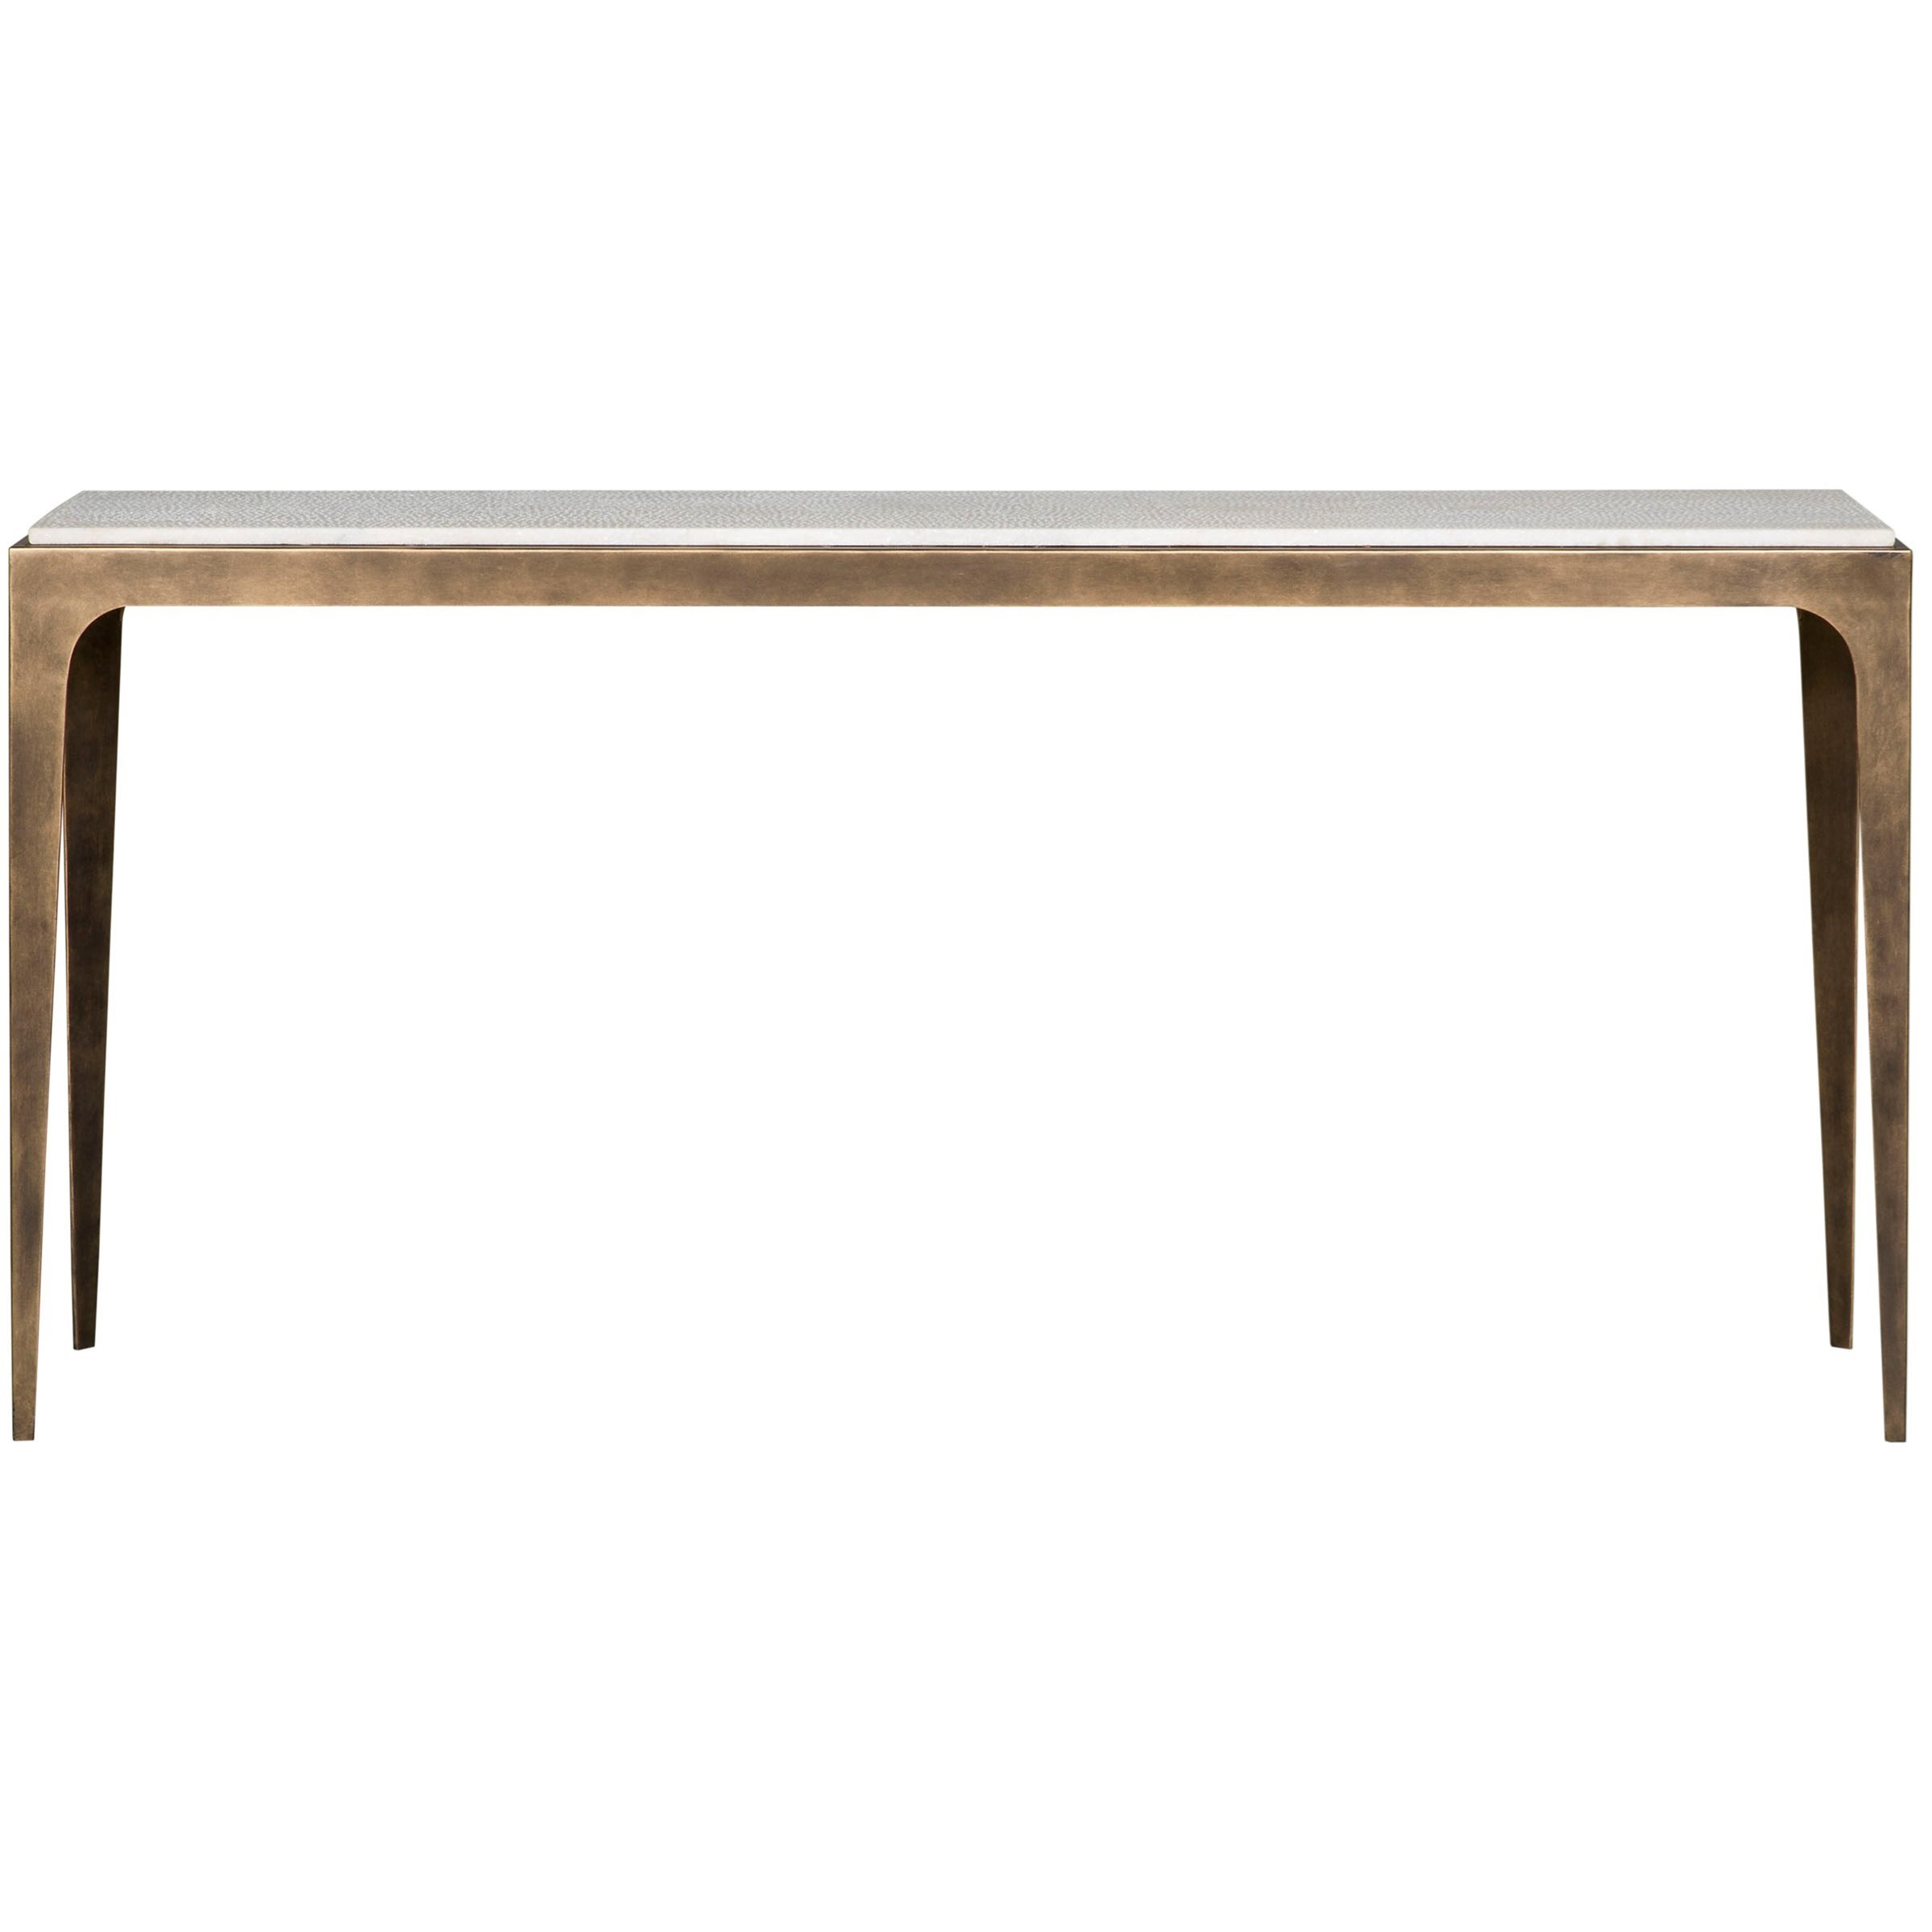 Vanguard Furniture Hancock Console Table With Marble Top